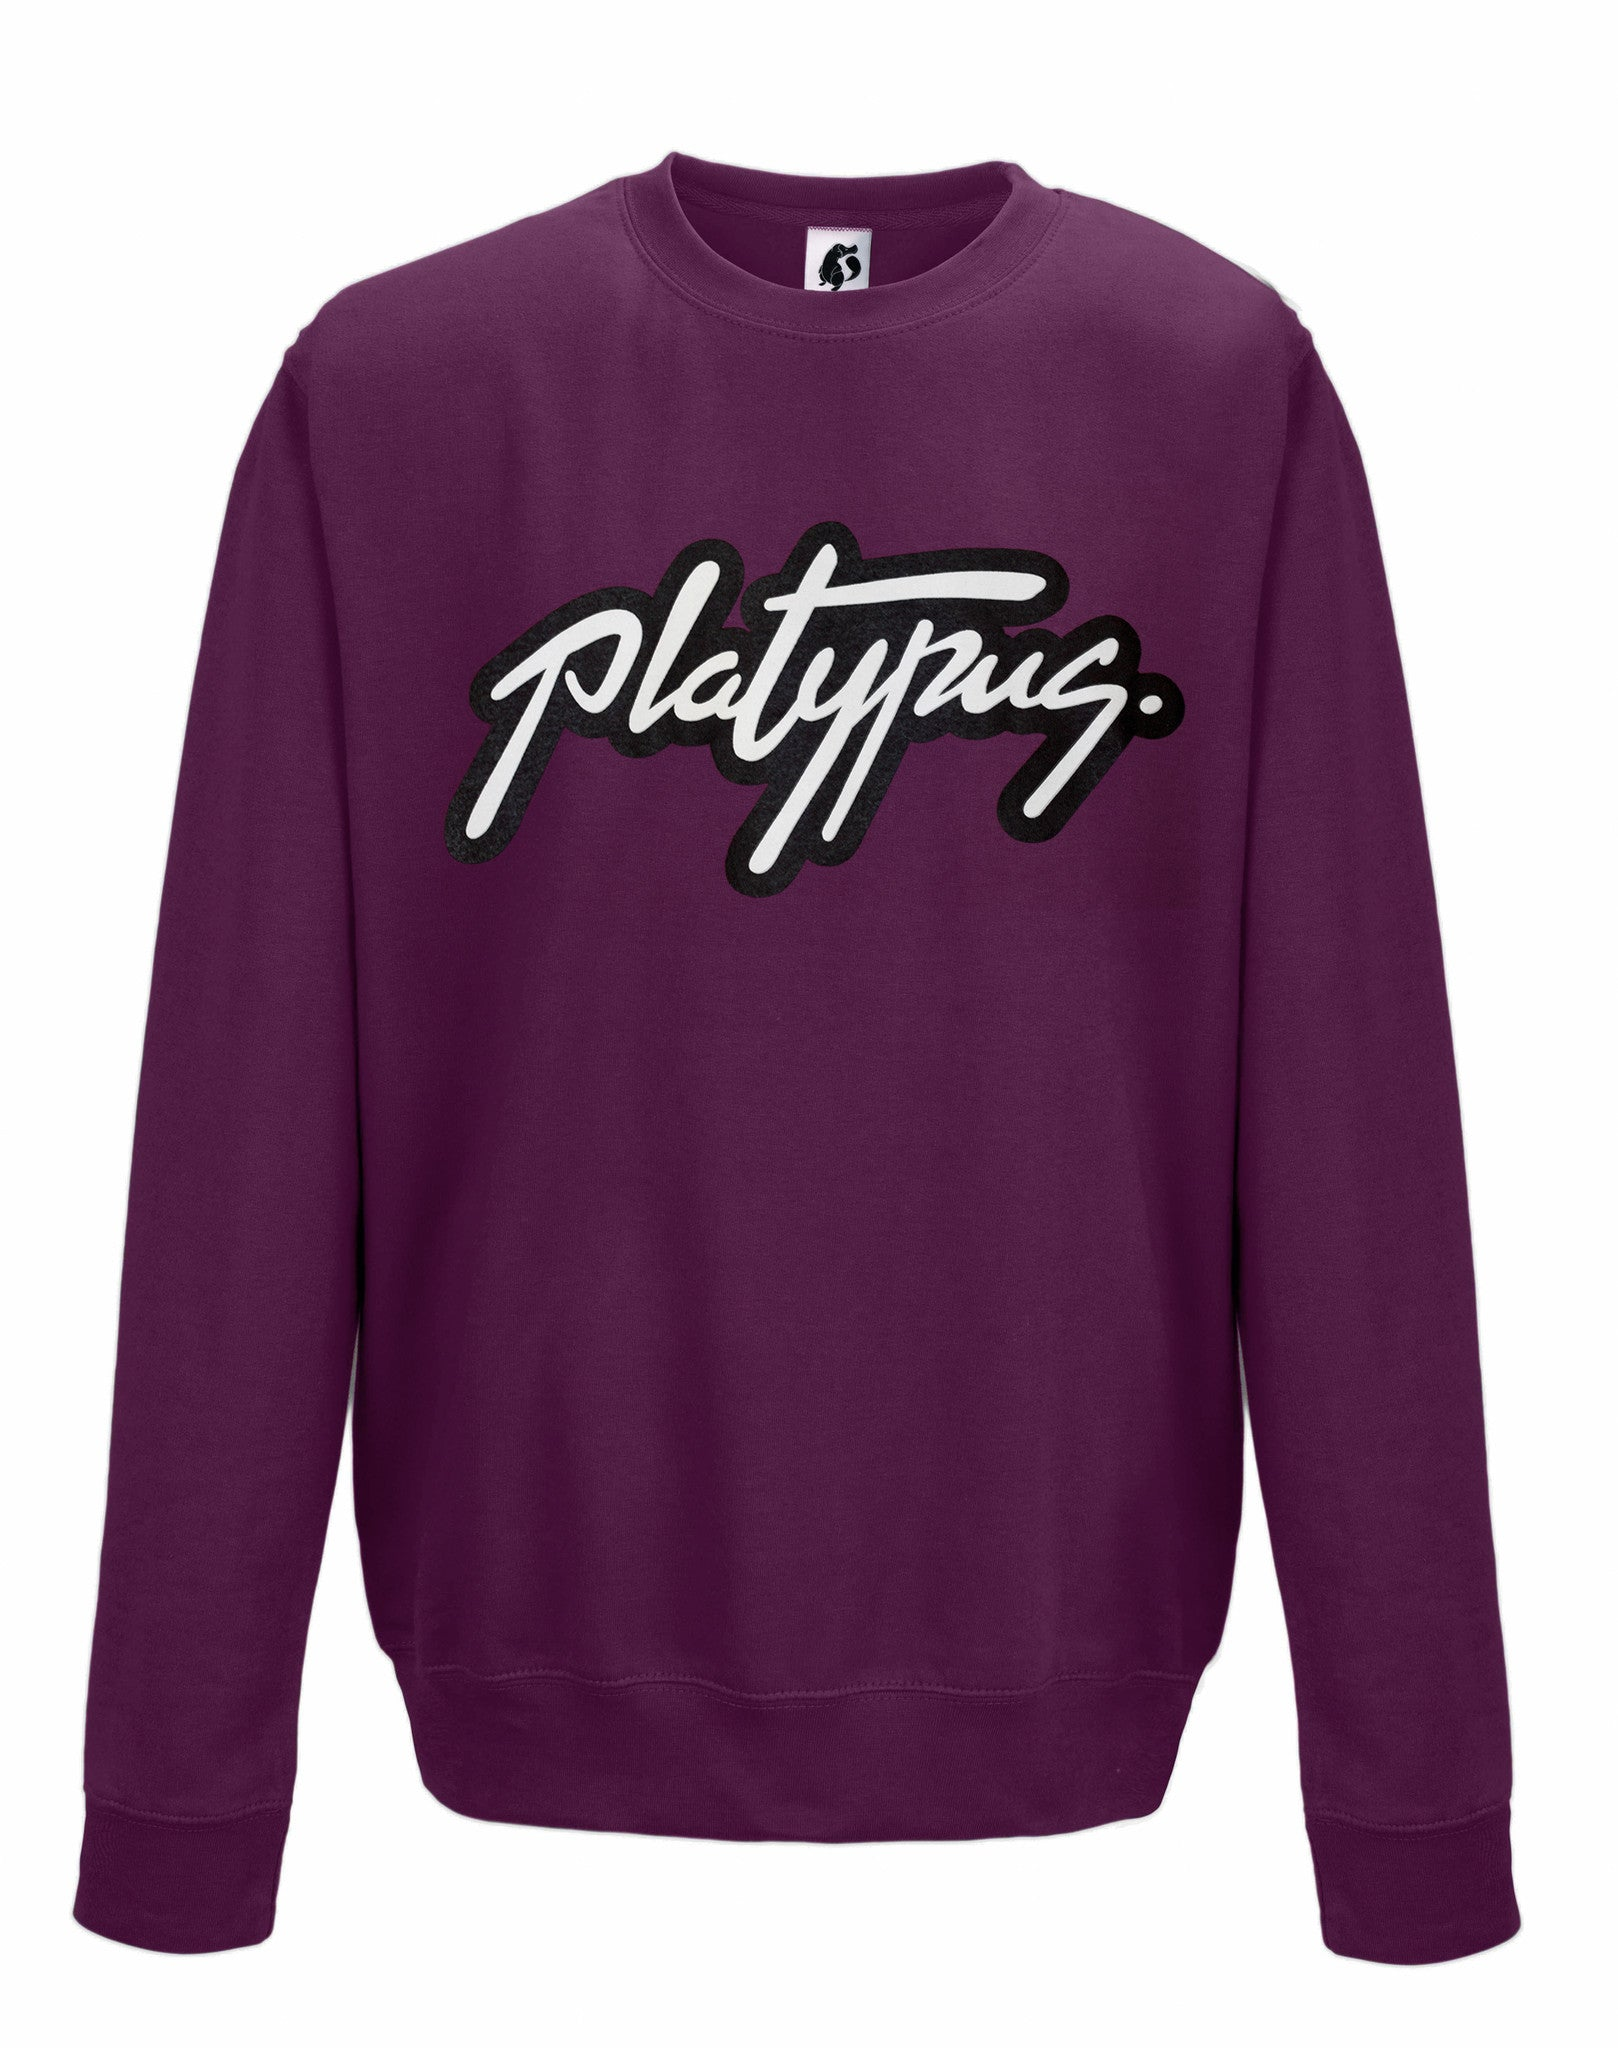 Platypus Logo Urban Sweatshirt jumper in Plum